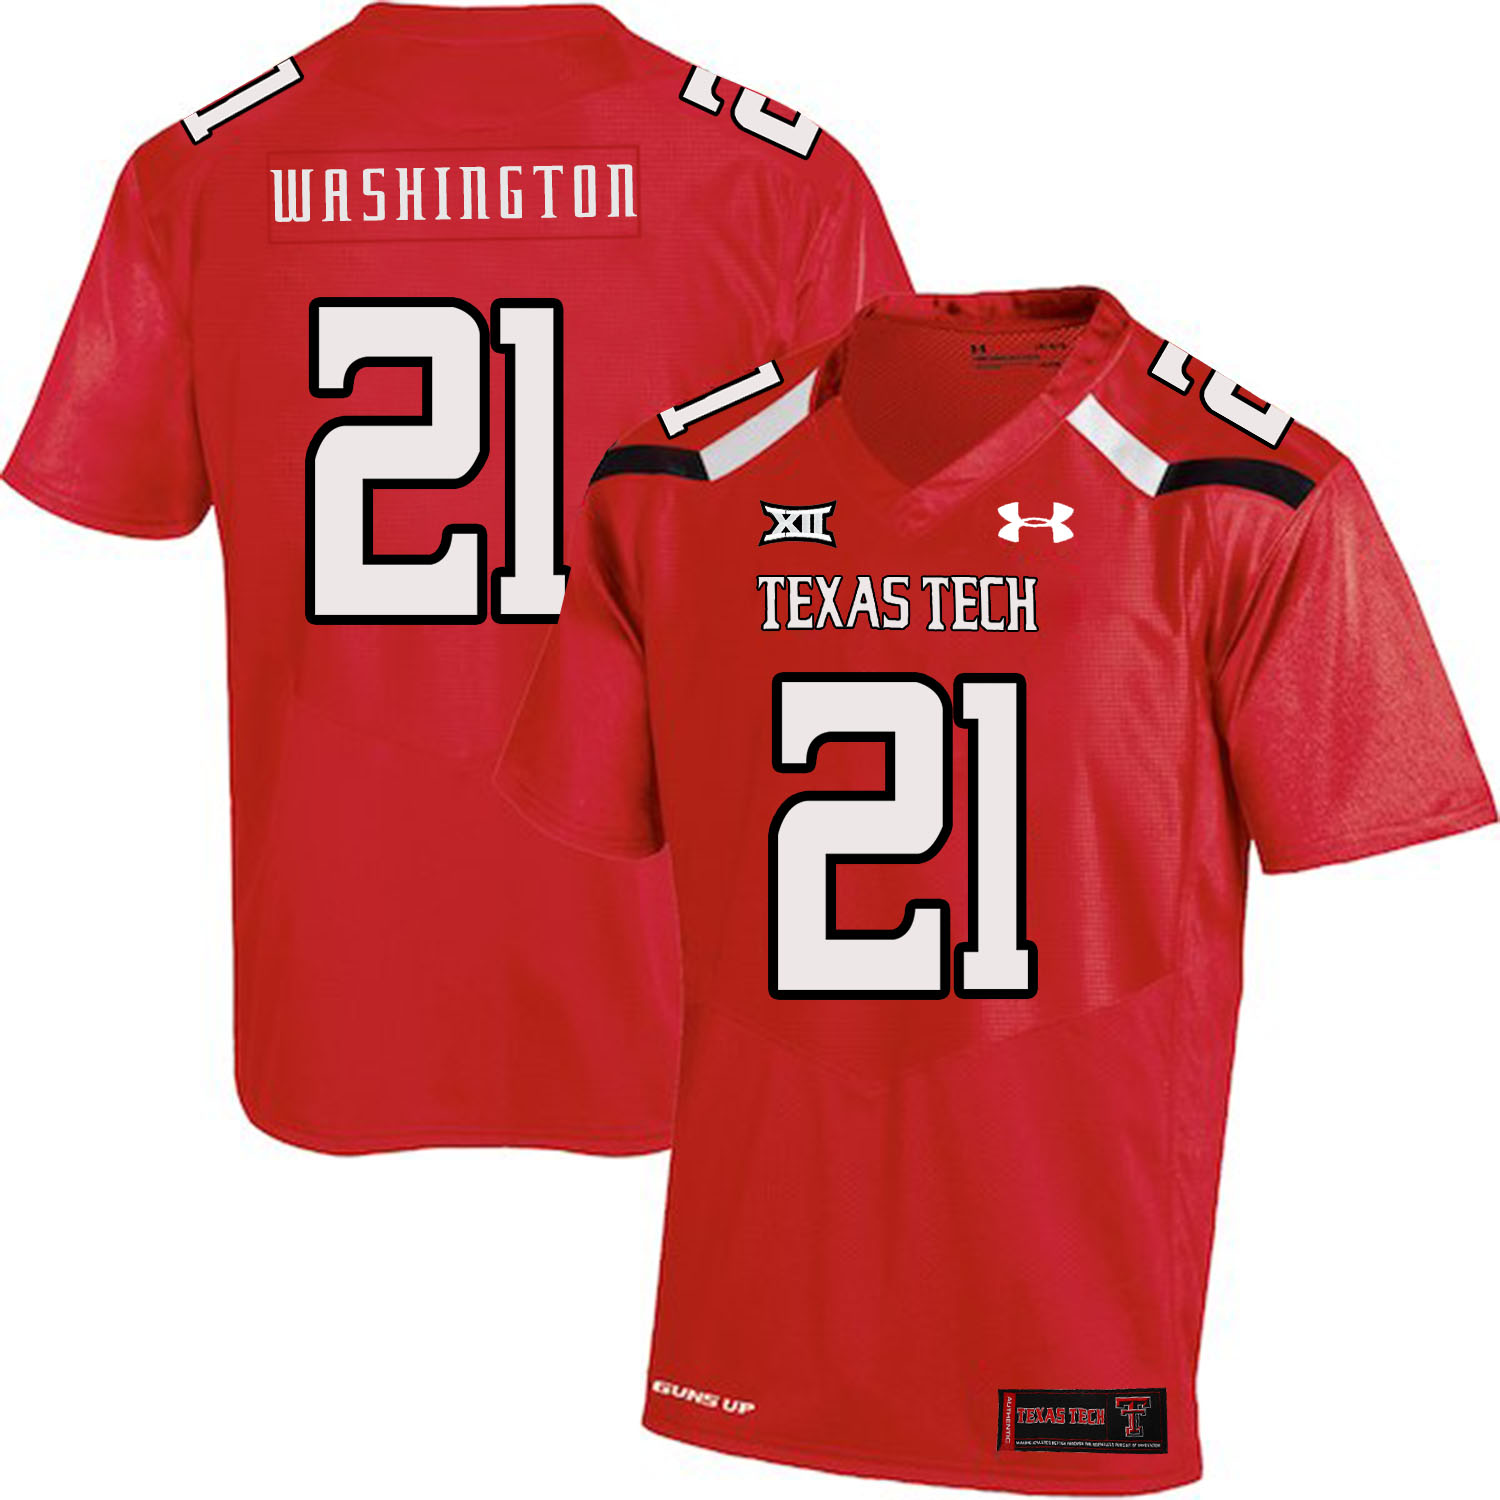 Texas Tech Red Raiders 21 DeAndre Washington Red College Football Jersey